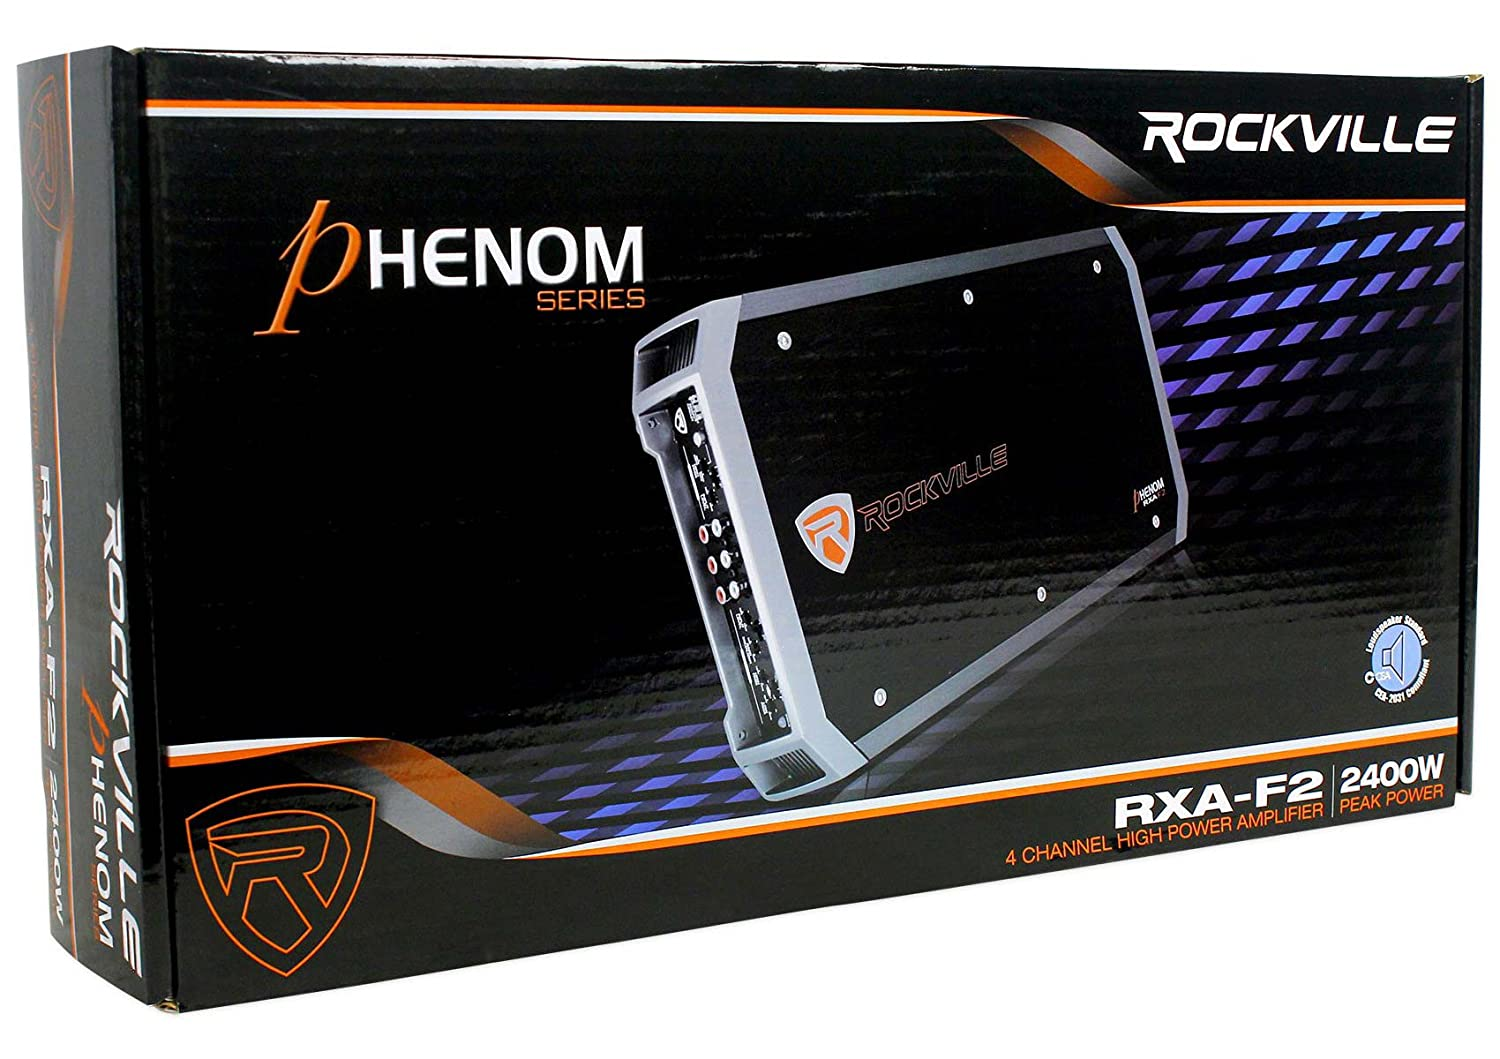 Amazon.com: Rockville RXA-F2 2400 Watt Peak / 1200w RMS 4 Channel Amplifier Car Stereo Amp: Car Electronics